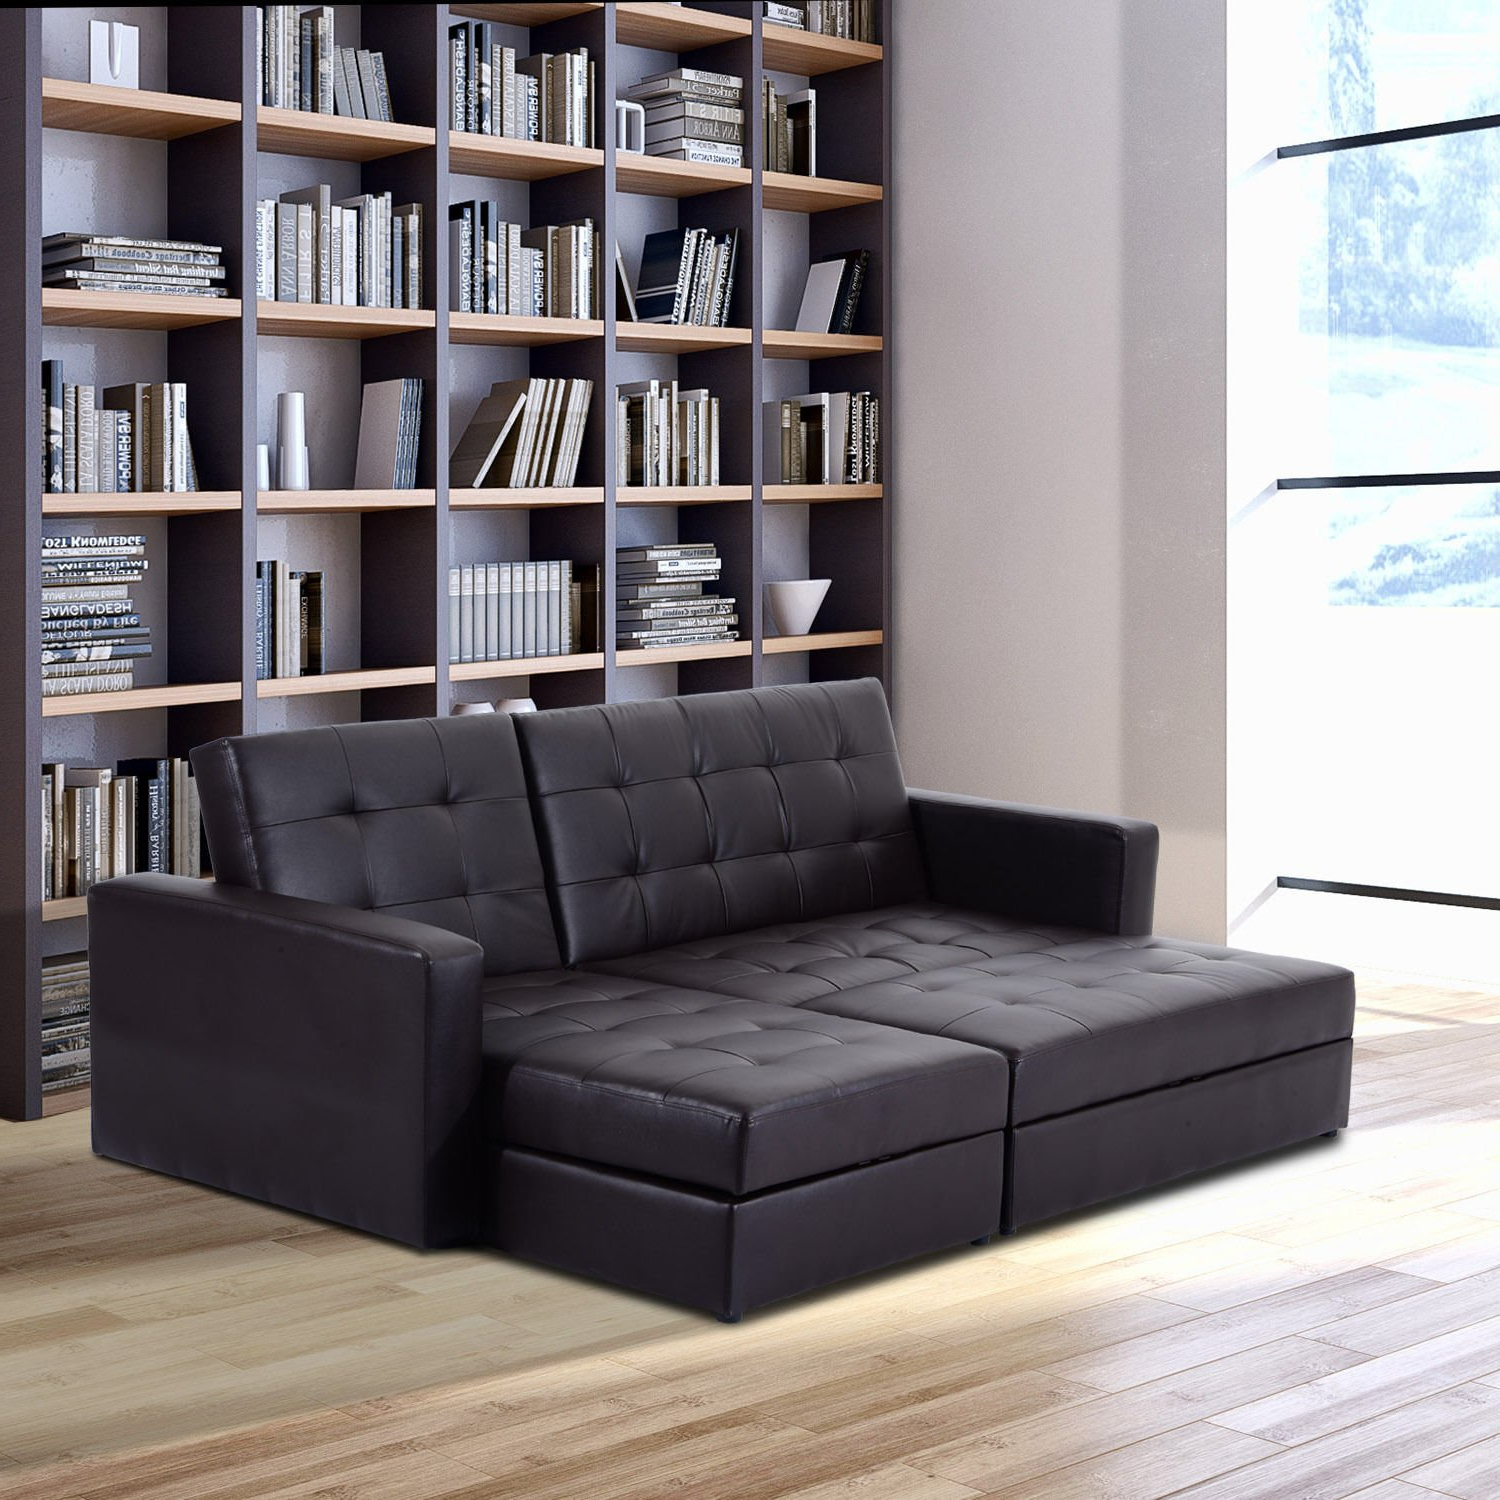 Storage+Sleeper+Couch+Sofa+Bed – Simply Style Throughout Fashionable Prato Storage Sectional Futon Sofas (View 11 of 25)